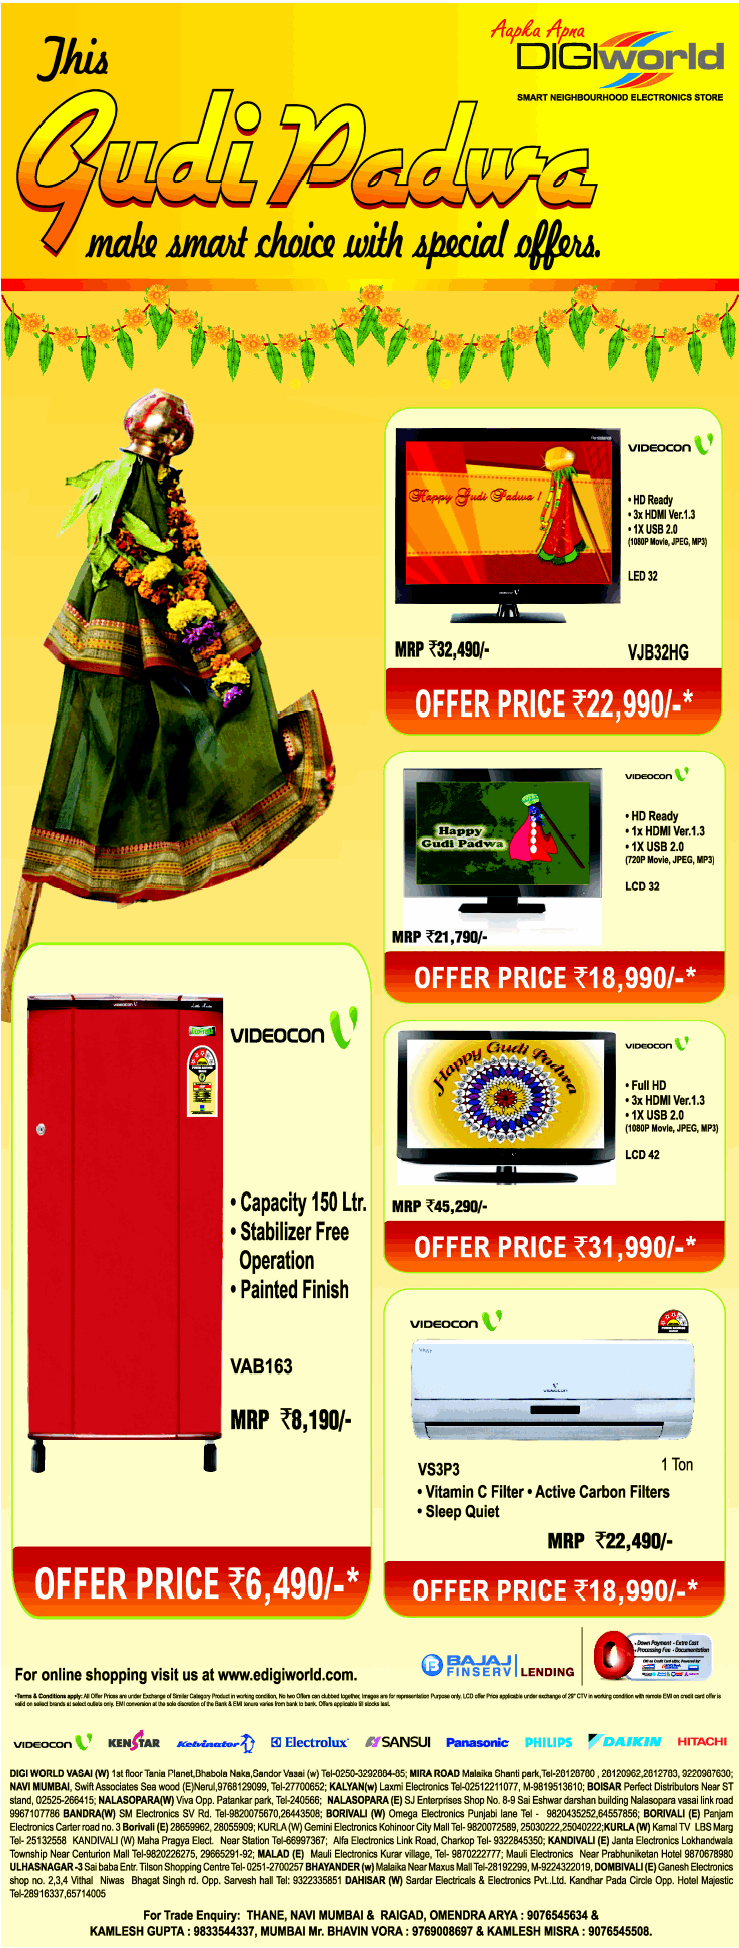 DigiWorld - Gudi Padwa Offers